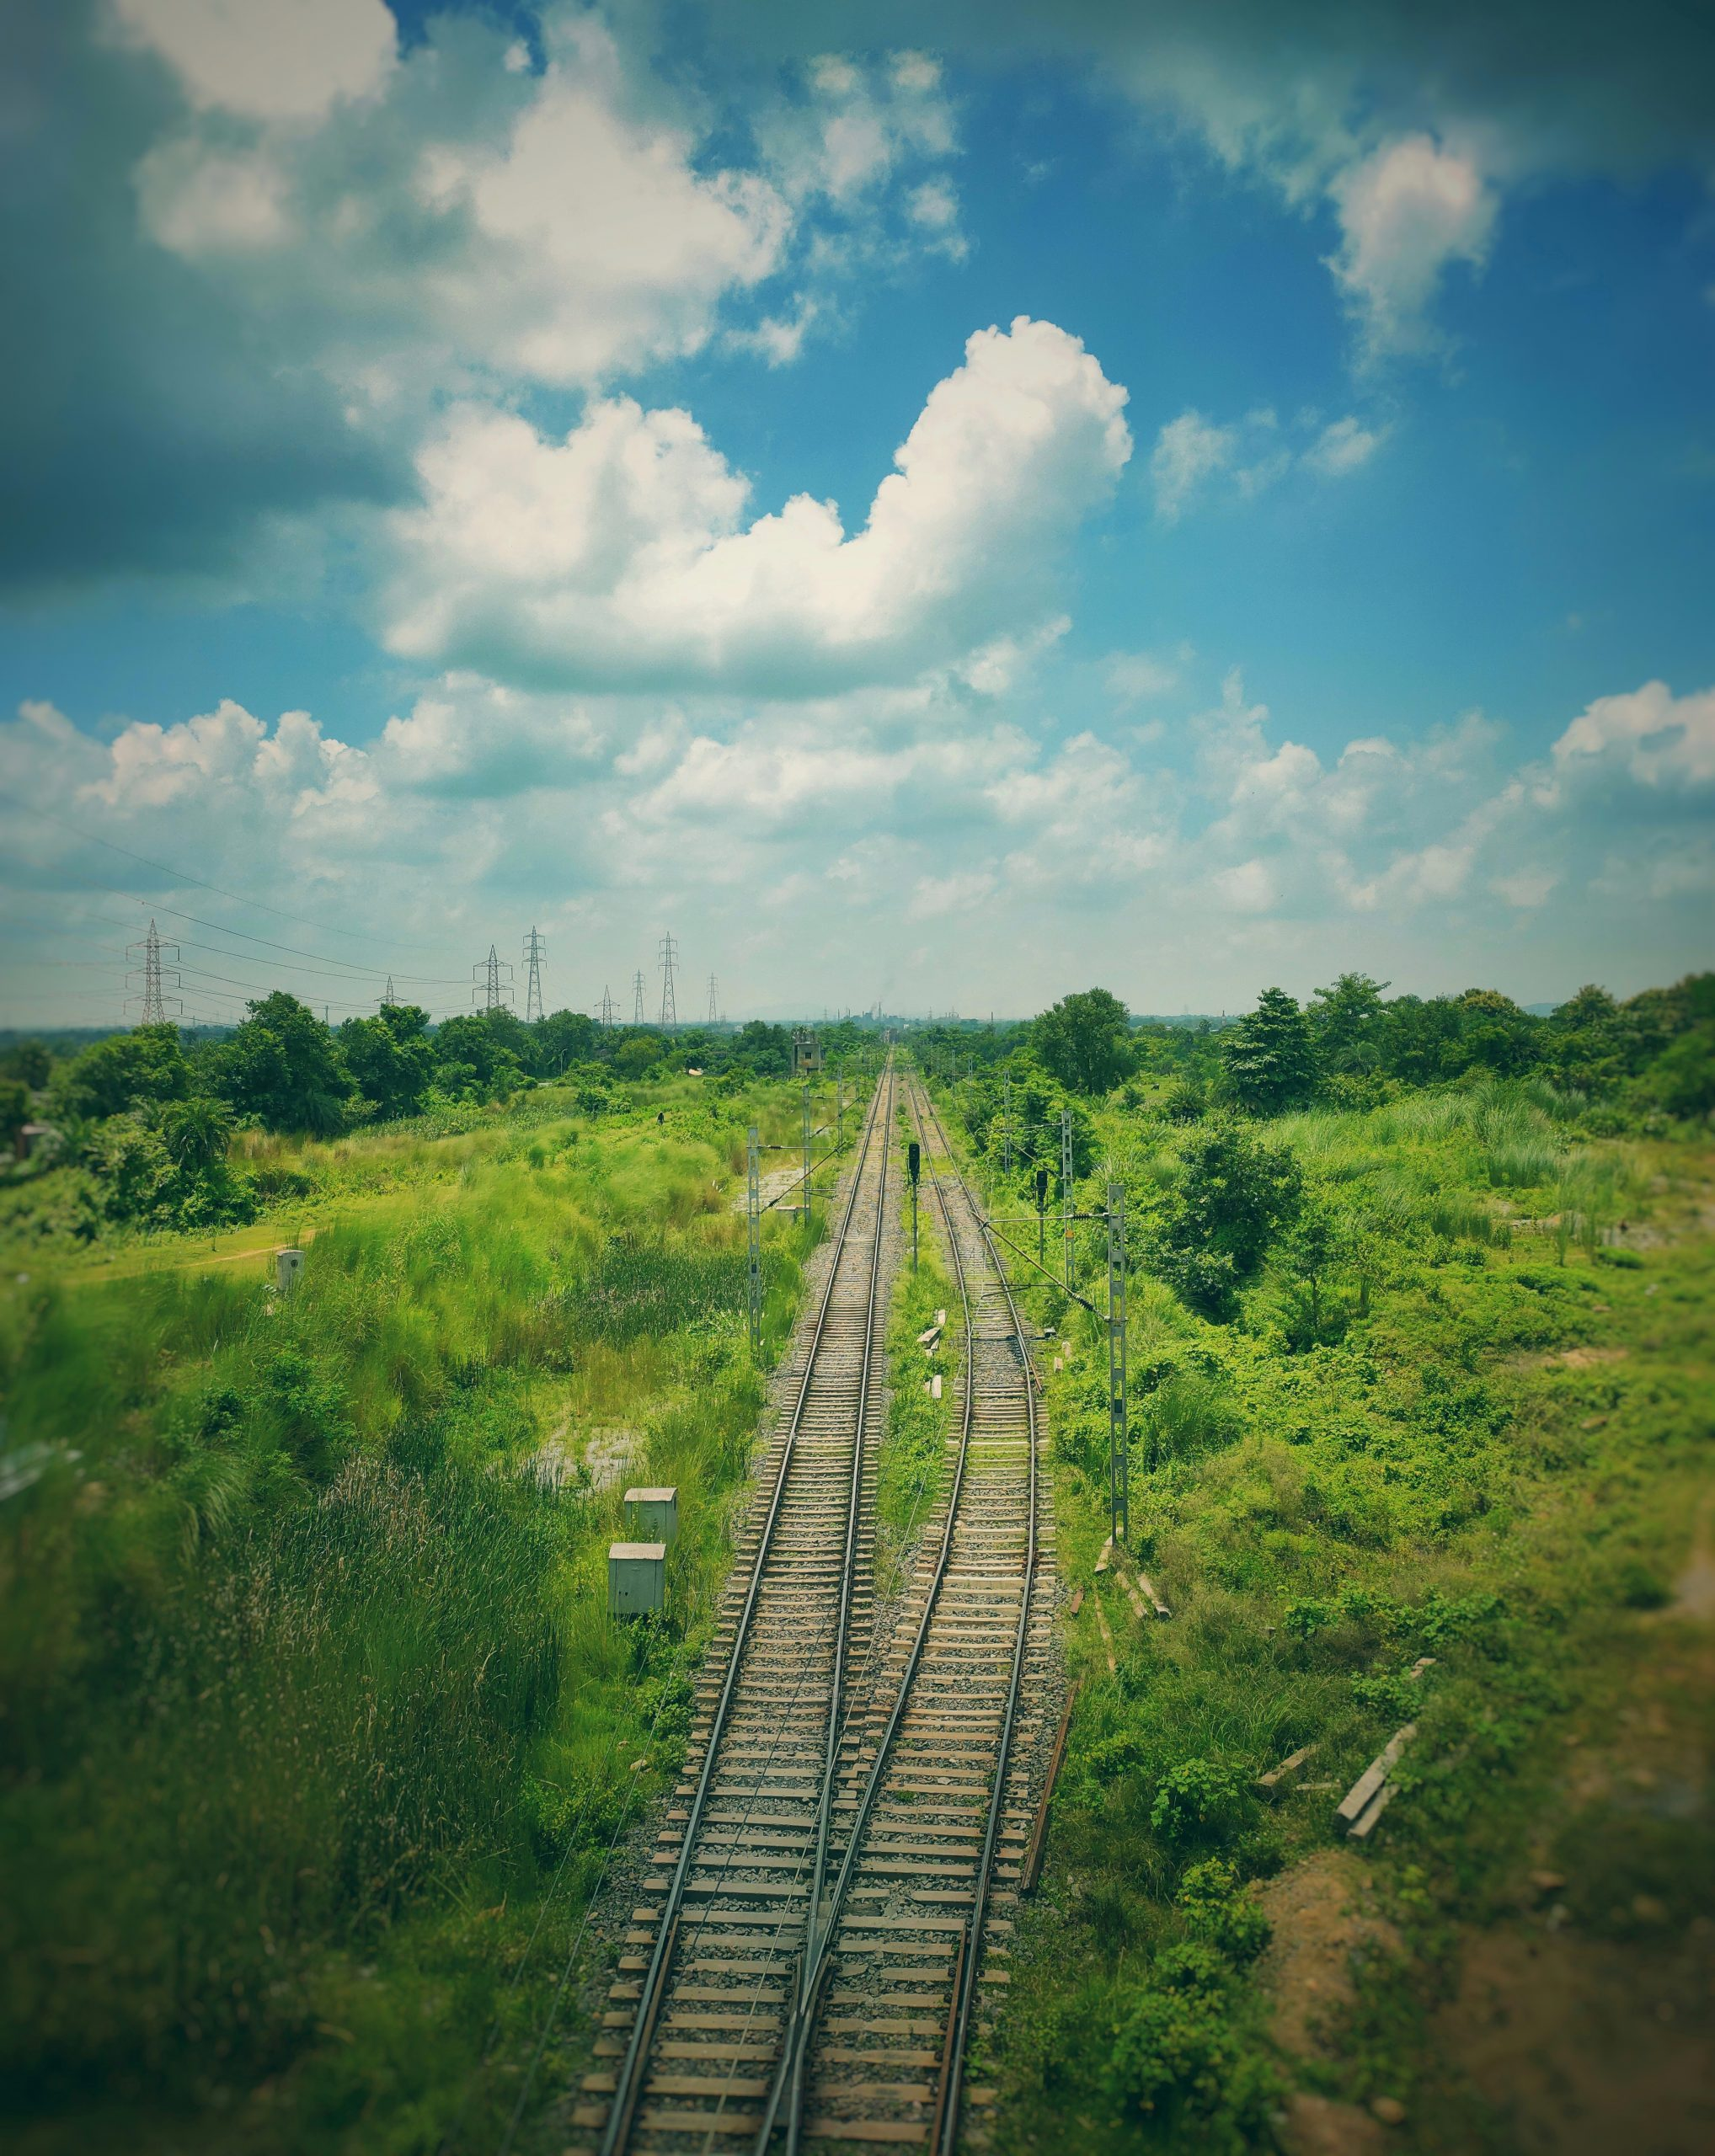 Railroads surrounded by plants